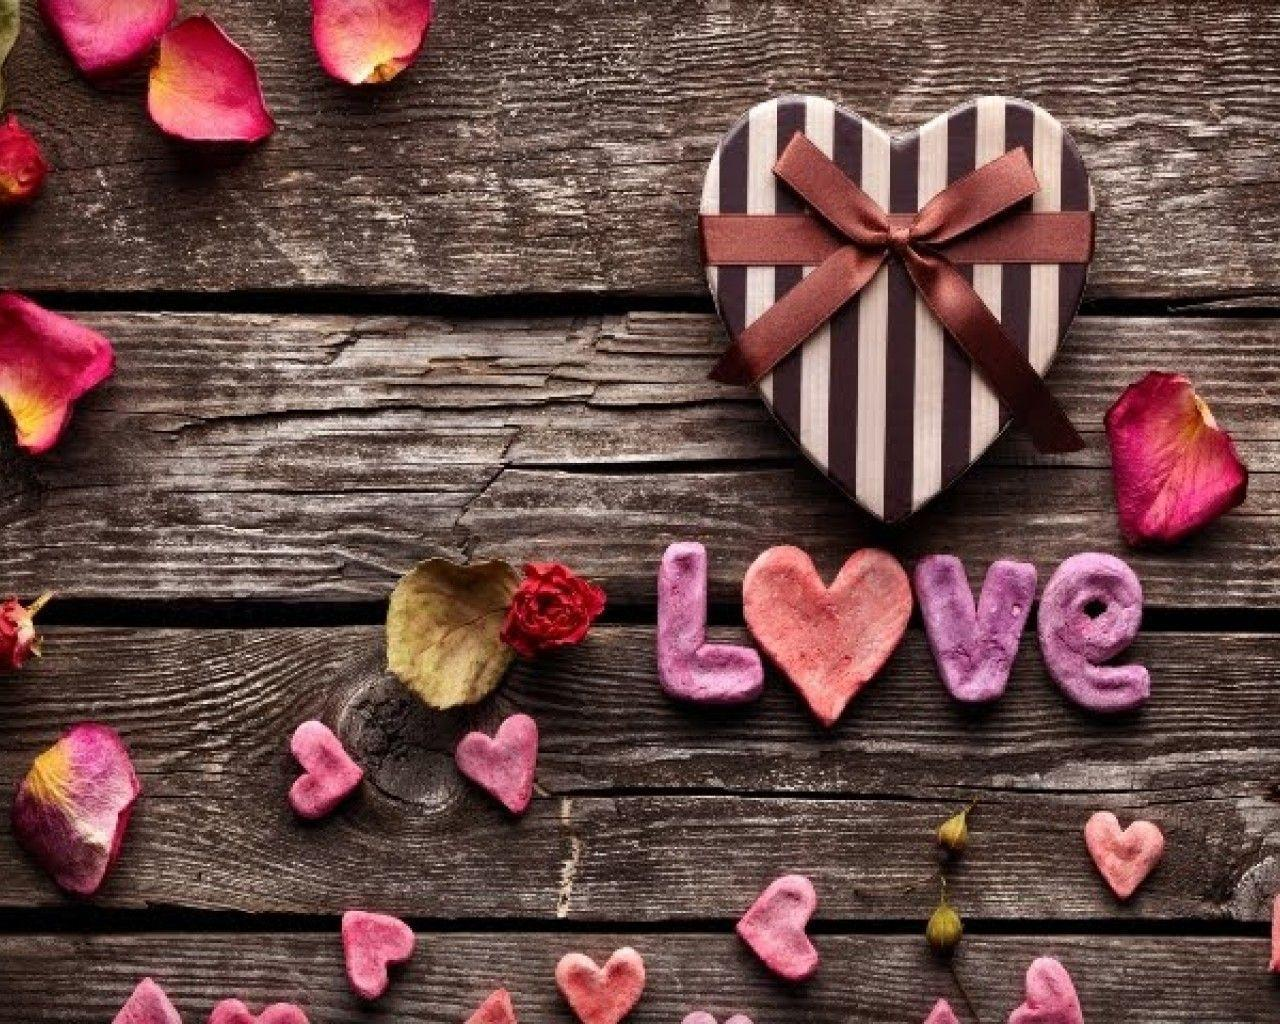 Wallpaper download cute - Free Download Cute Love Wallpapers For Mobile 640x480px